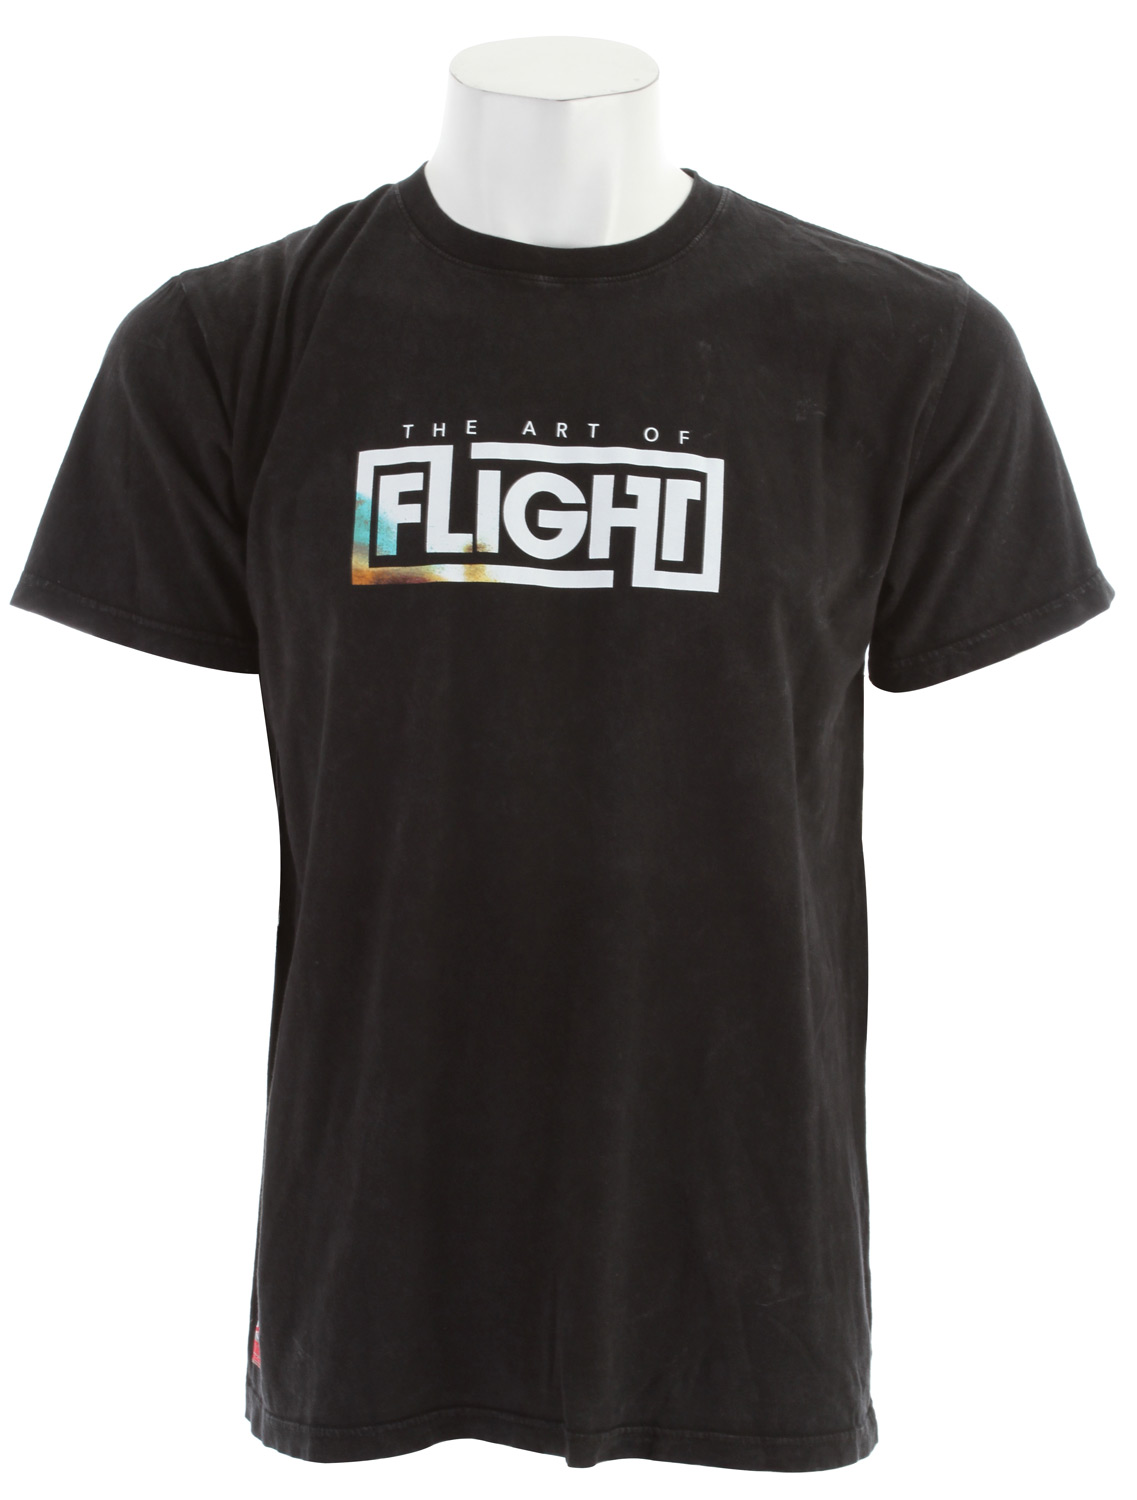 Surf Key Features of The Quiksilver Art Of Flight Dark T-Shirt: Regular Fit Crew Neck Short Sleeve - $24.95